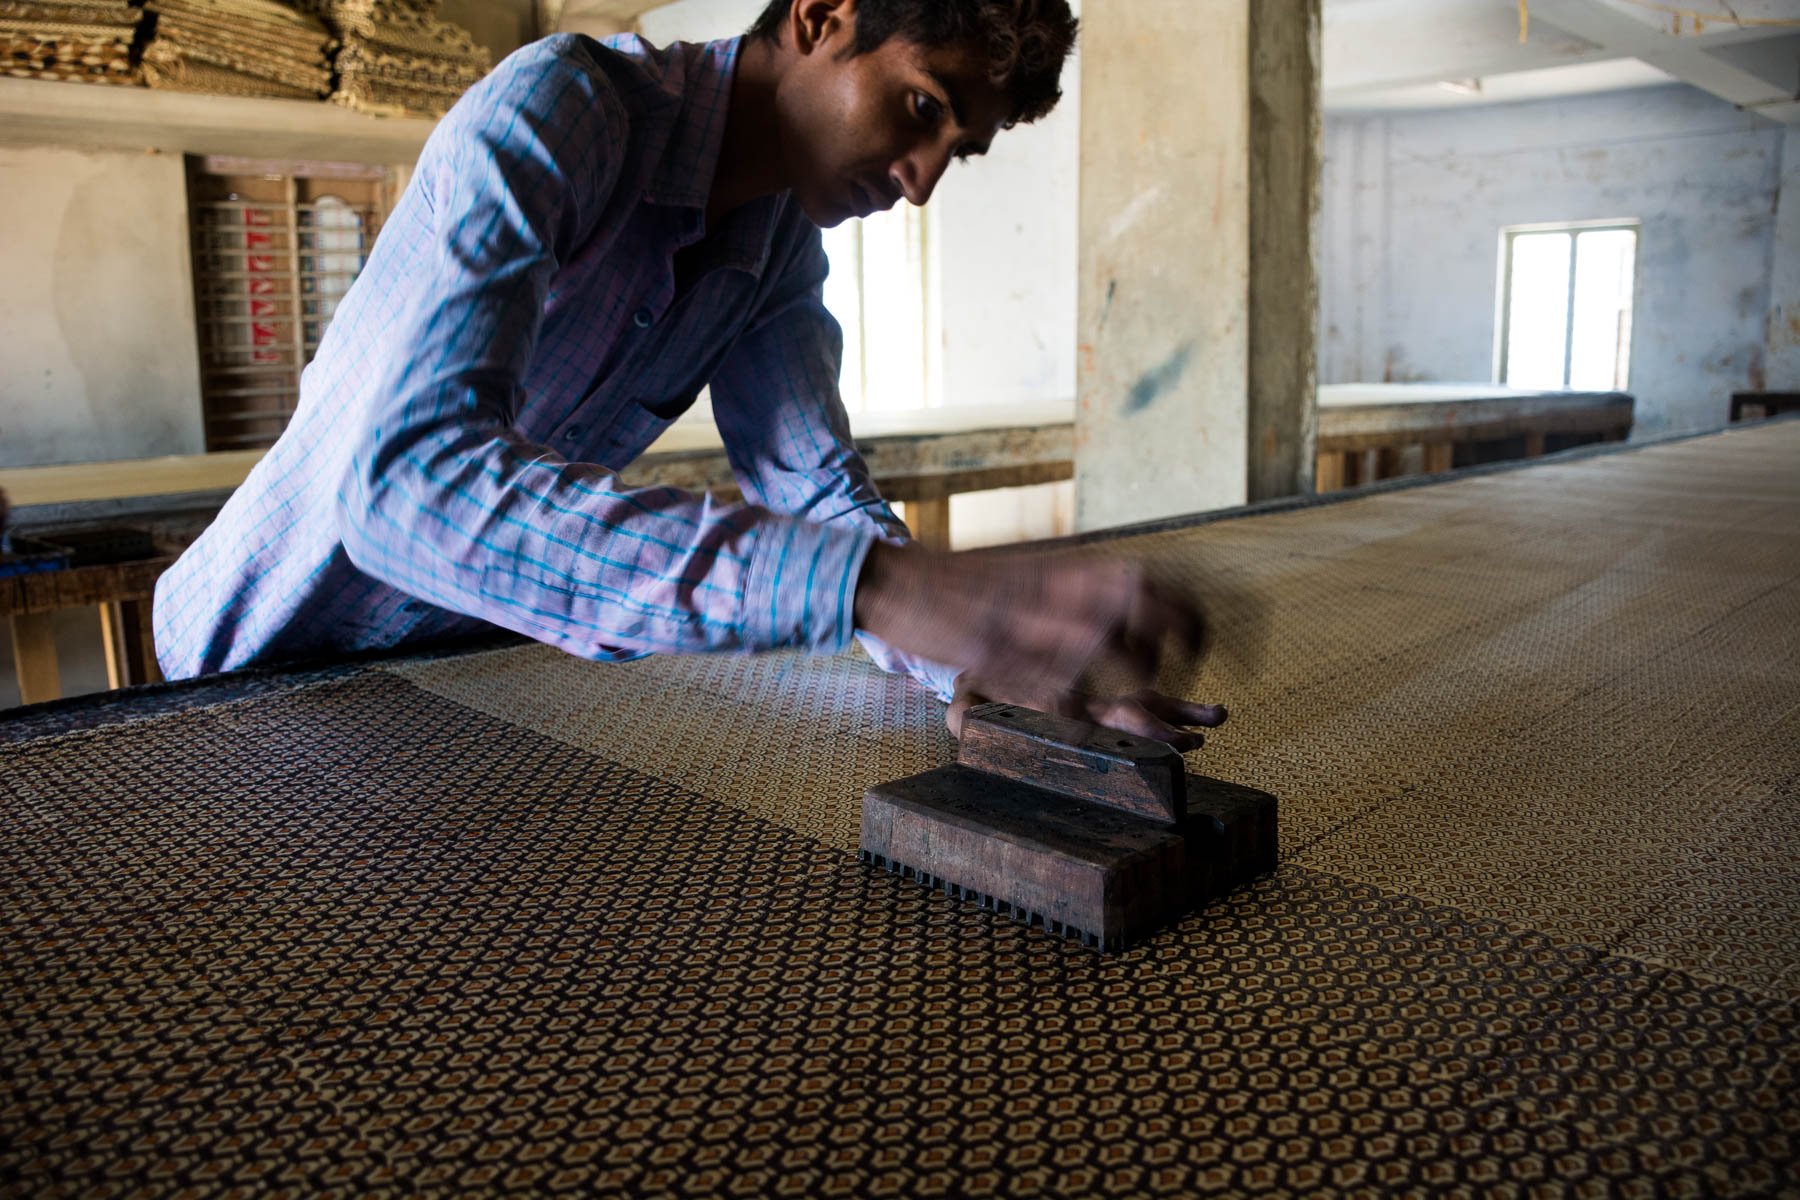 Textiles and crafts of Kutch, Gujarat, India - A man block printing by hand in Ajrakhpur, India - Lost With Purpose